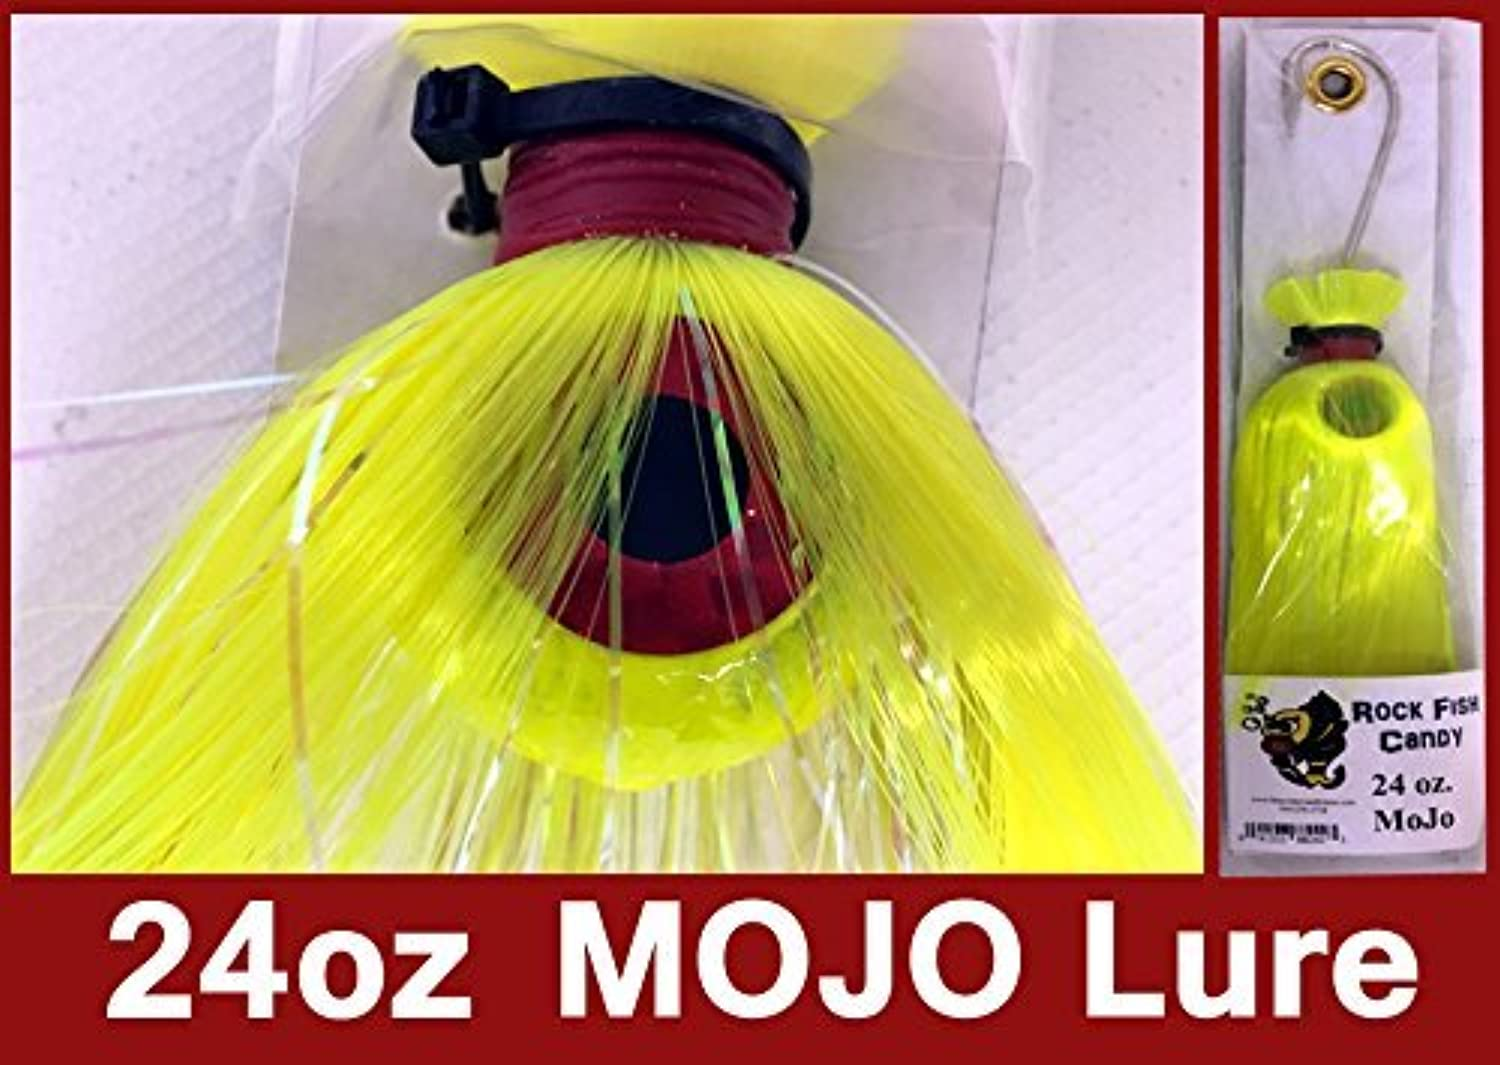 blueee Water Candy  Rock Fish Candy 24 oz Cannonball Mojo Lure (Chartreuse)  882423